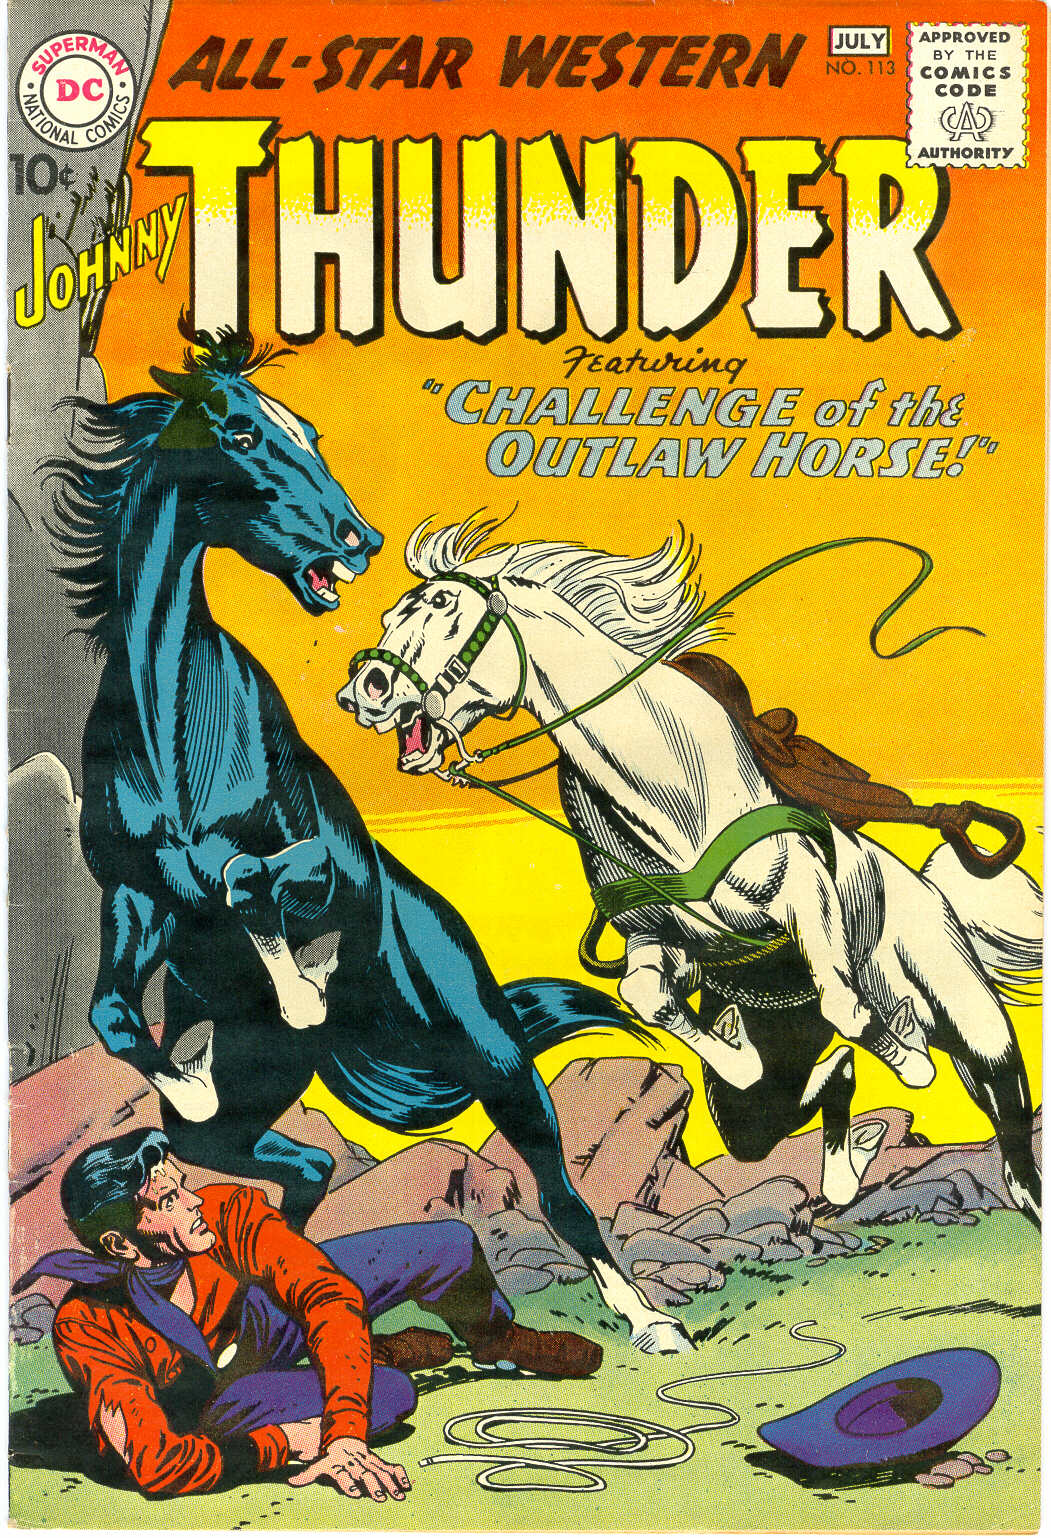 Read online All-Star Western (1951) comic -  Issue #113 - 1